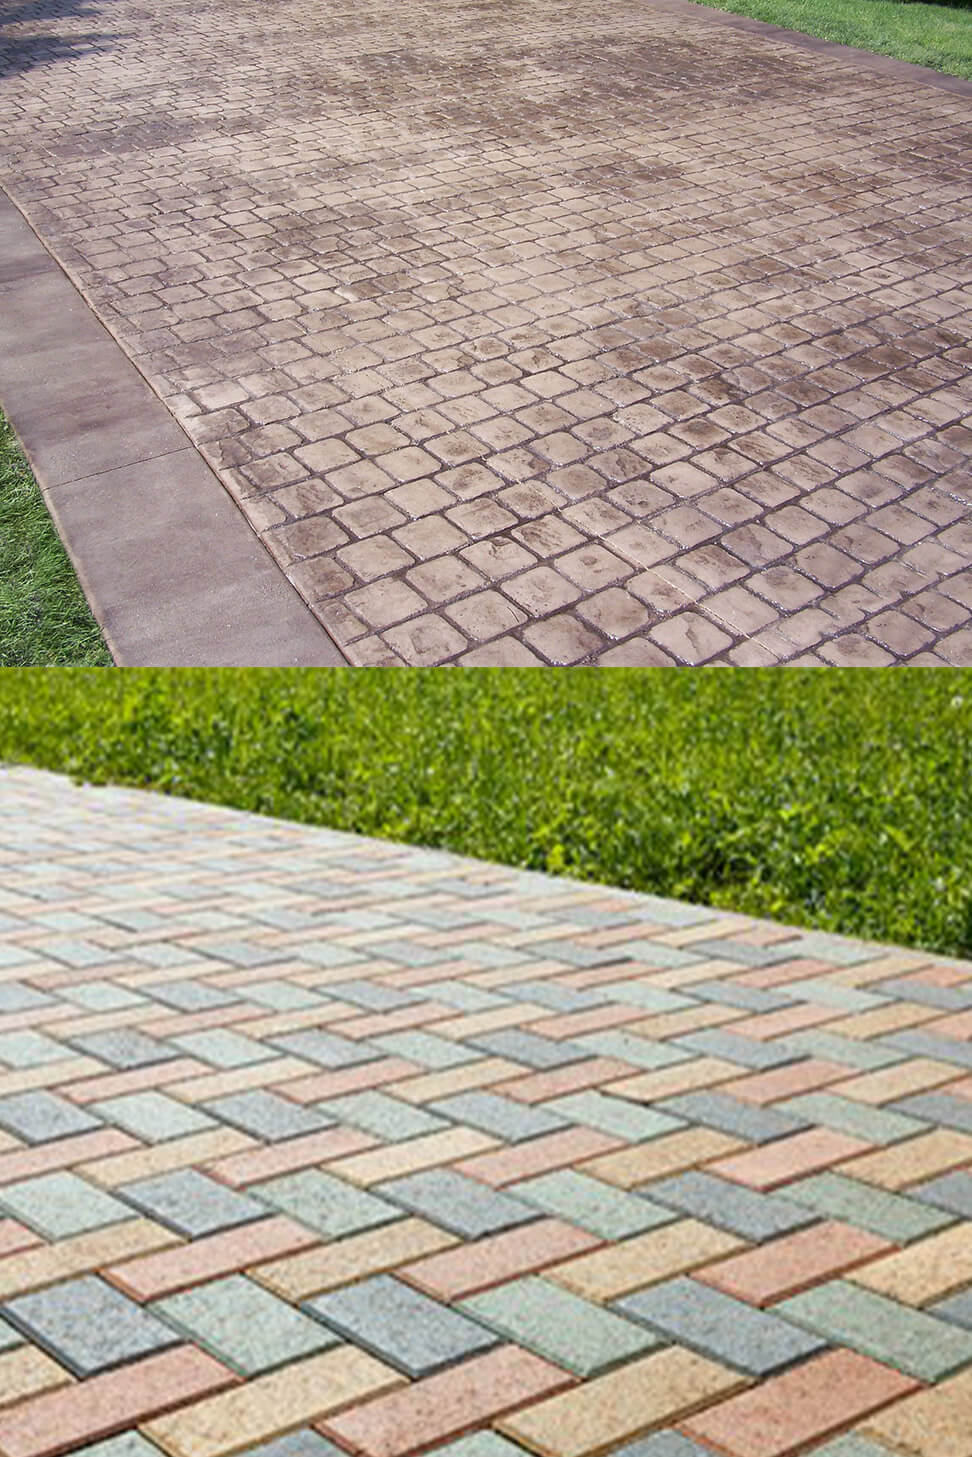 The Features of Concrete Paver